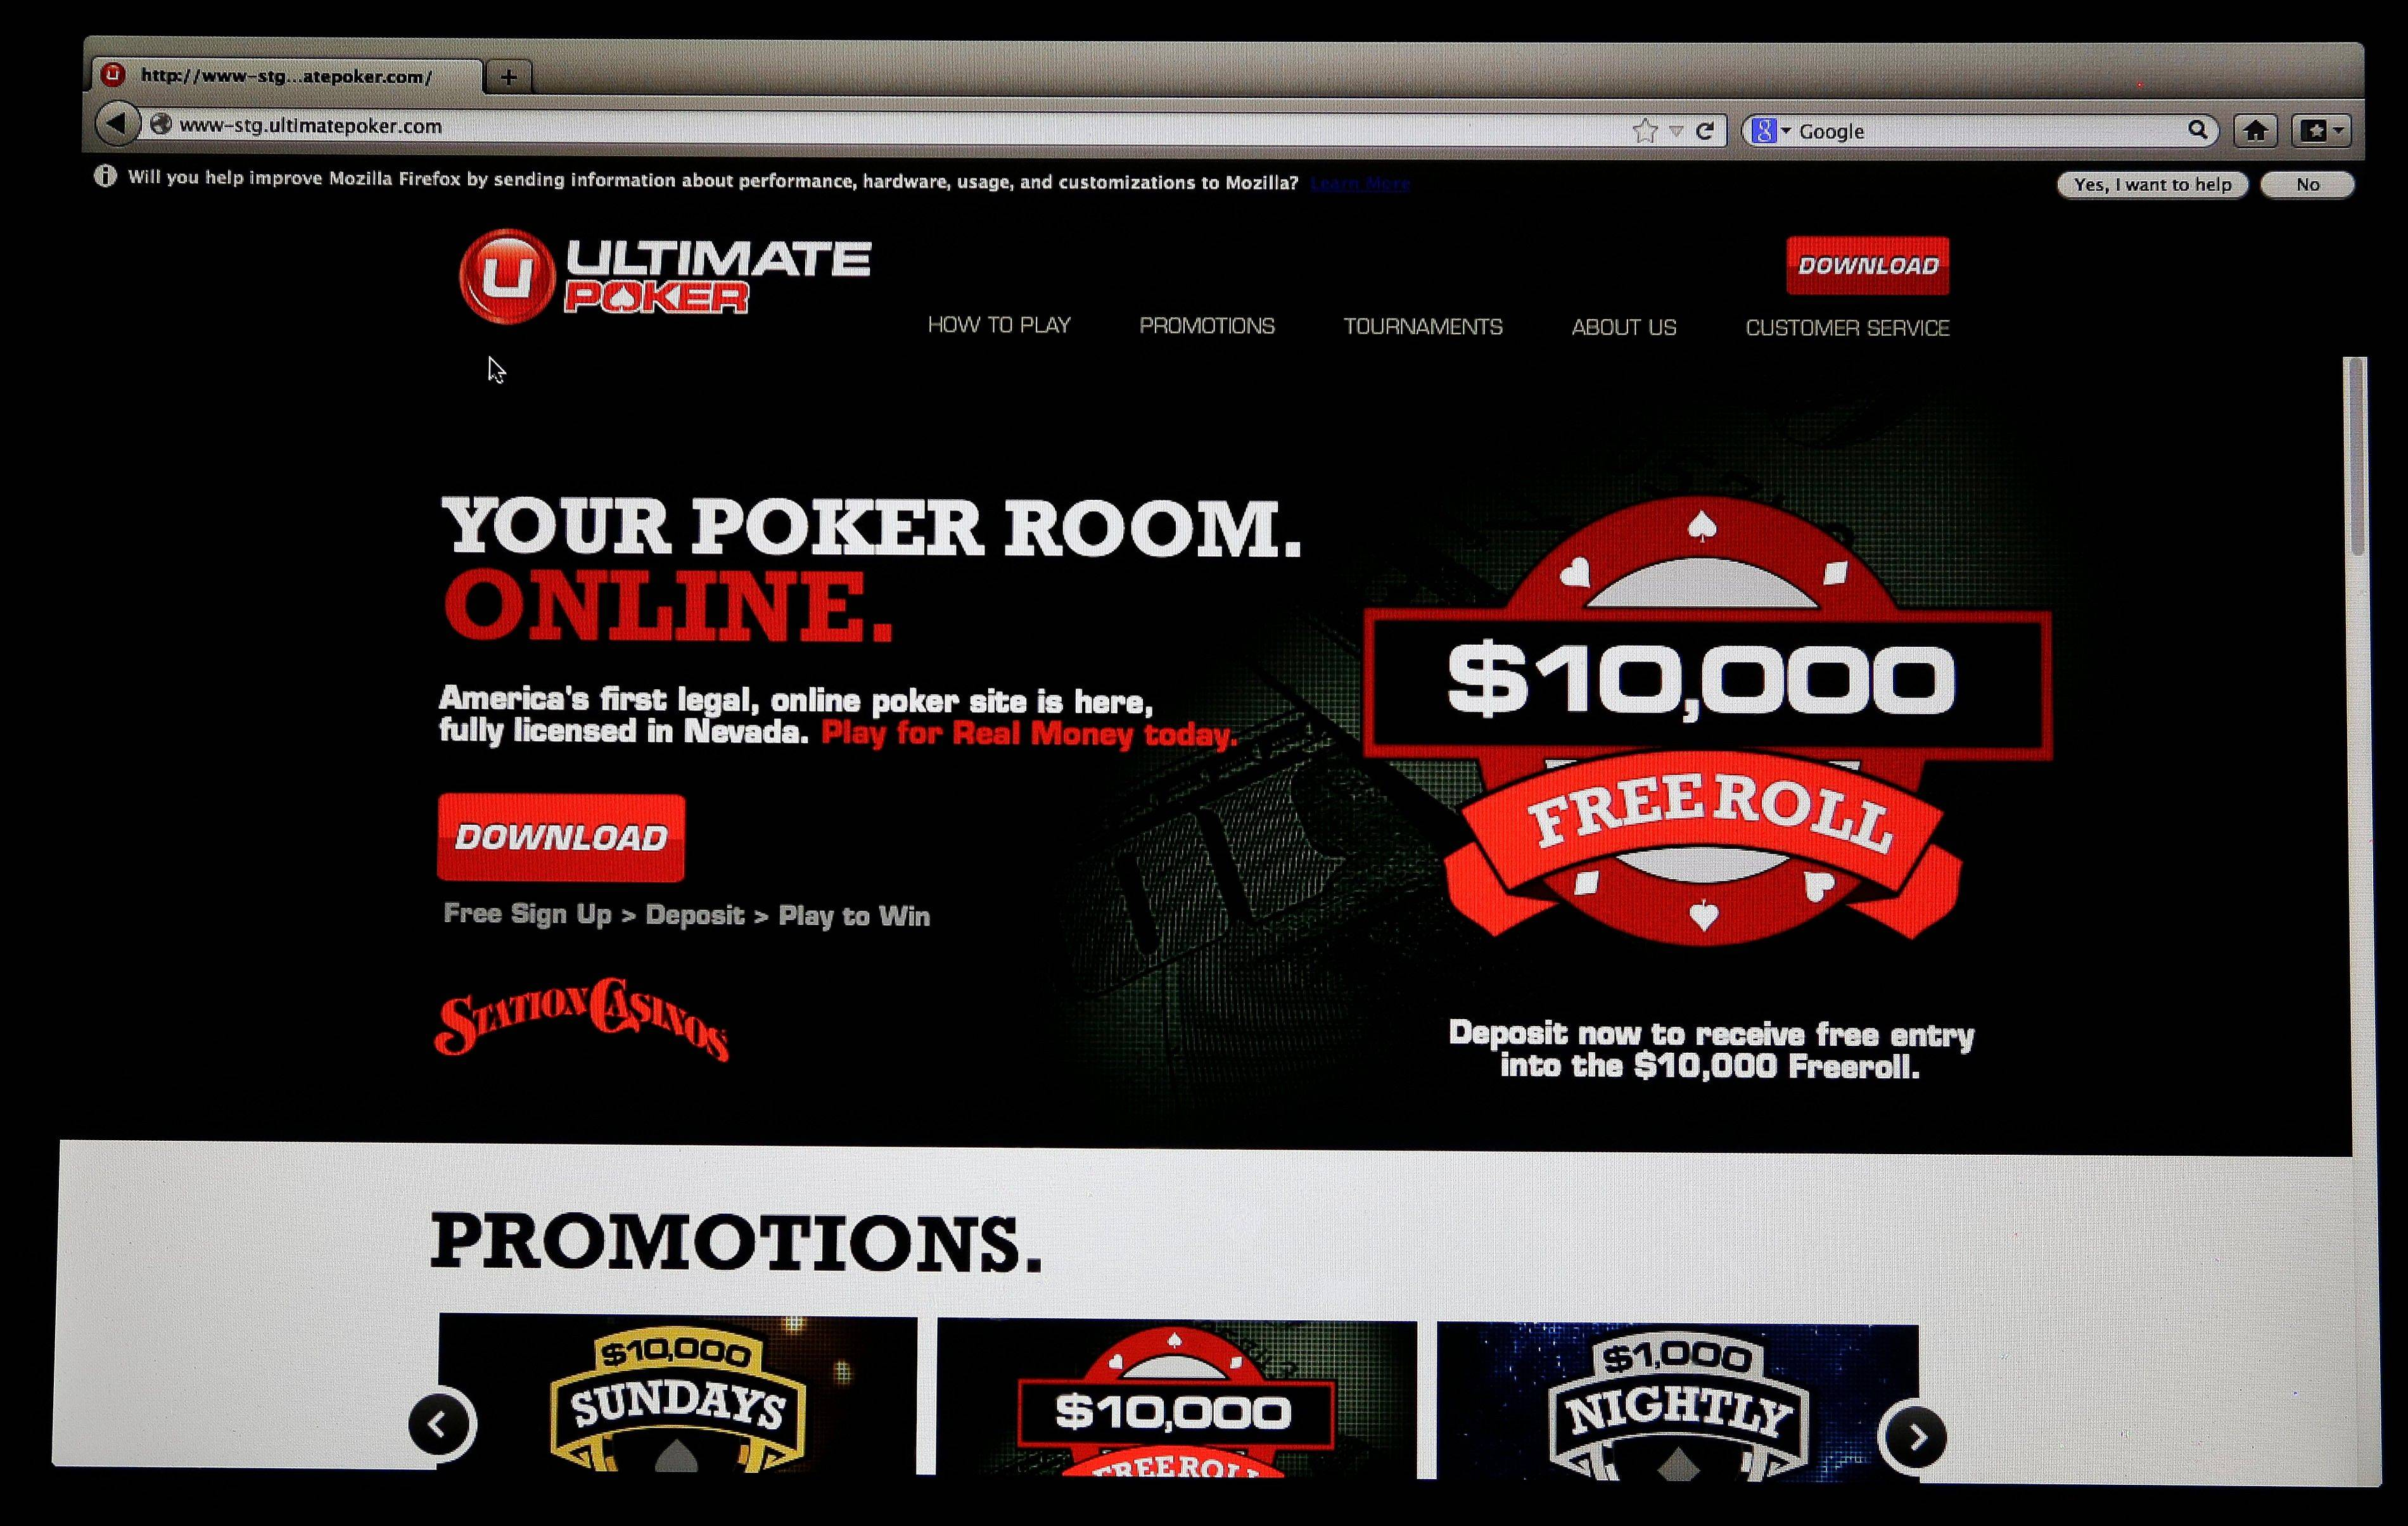 Social gaming company Ultimate Gaming is launching Ultimate Poker, the first legal, real-money poker site in the United States. The Ultimate Gaming site will be available only to in players in Nevada but likely represents the shape of things to come for gamblers across the country.